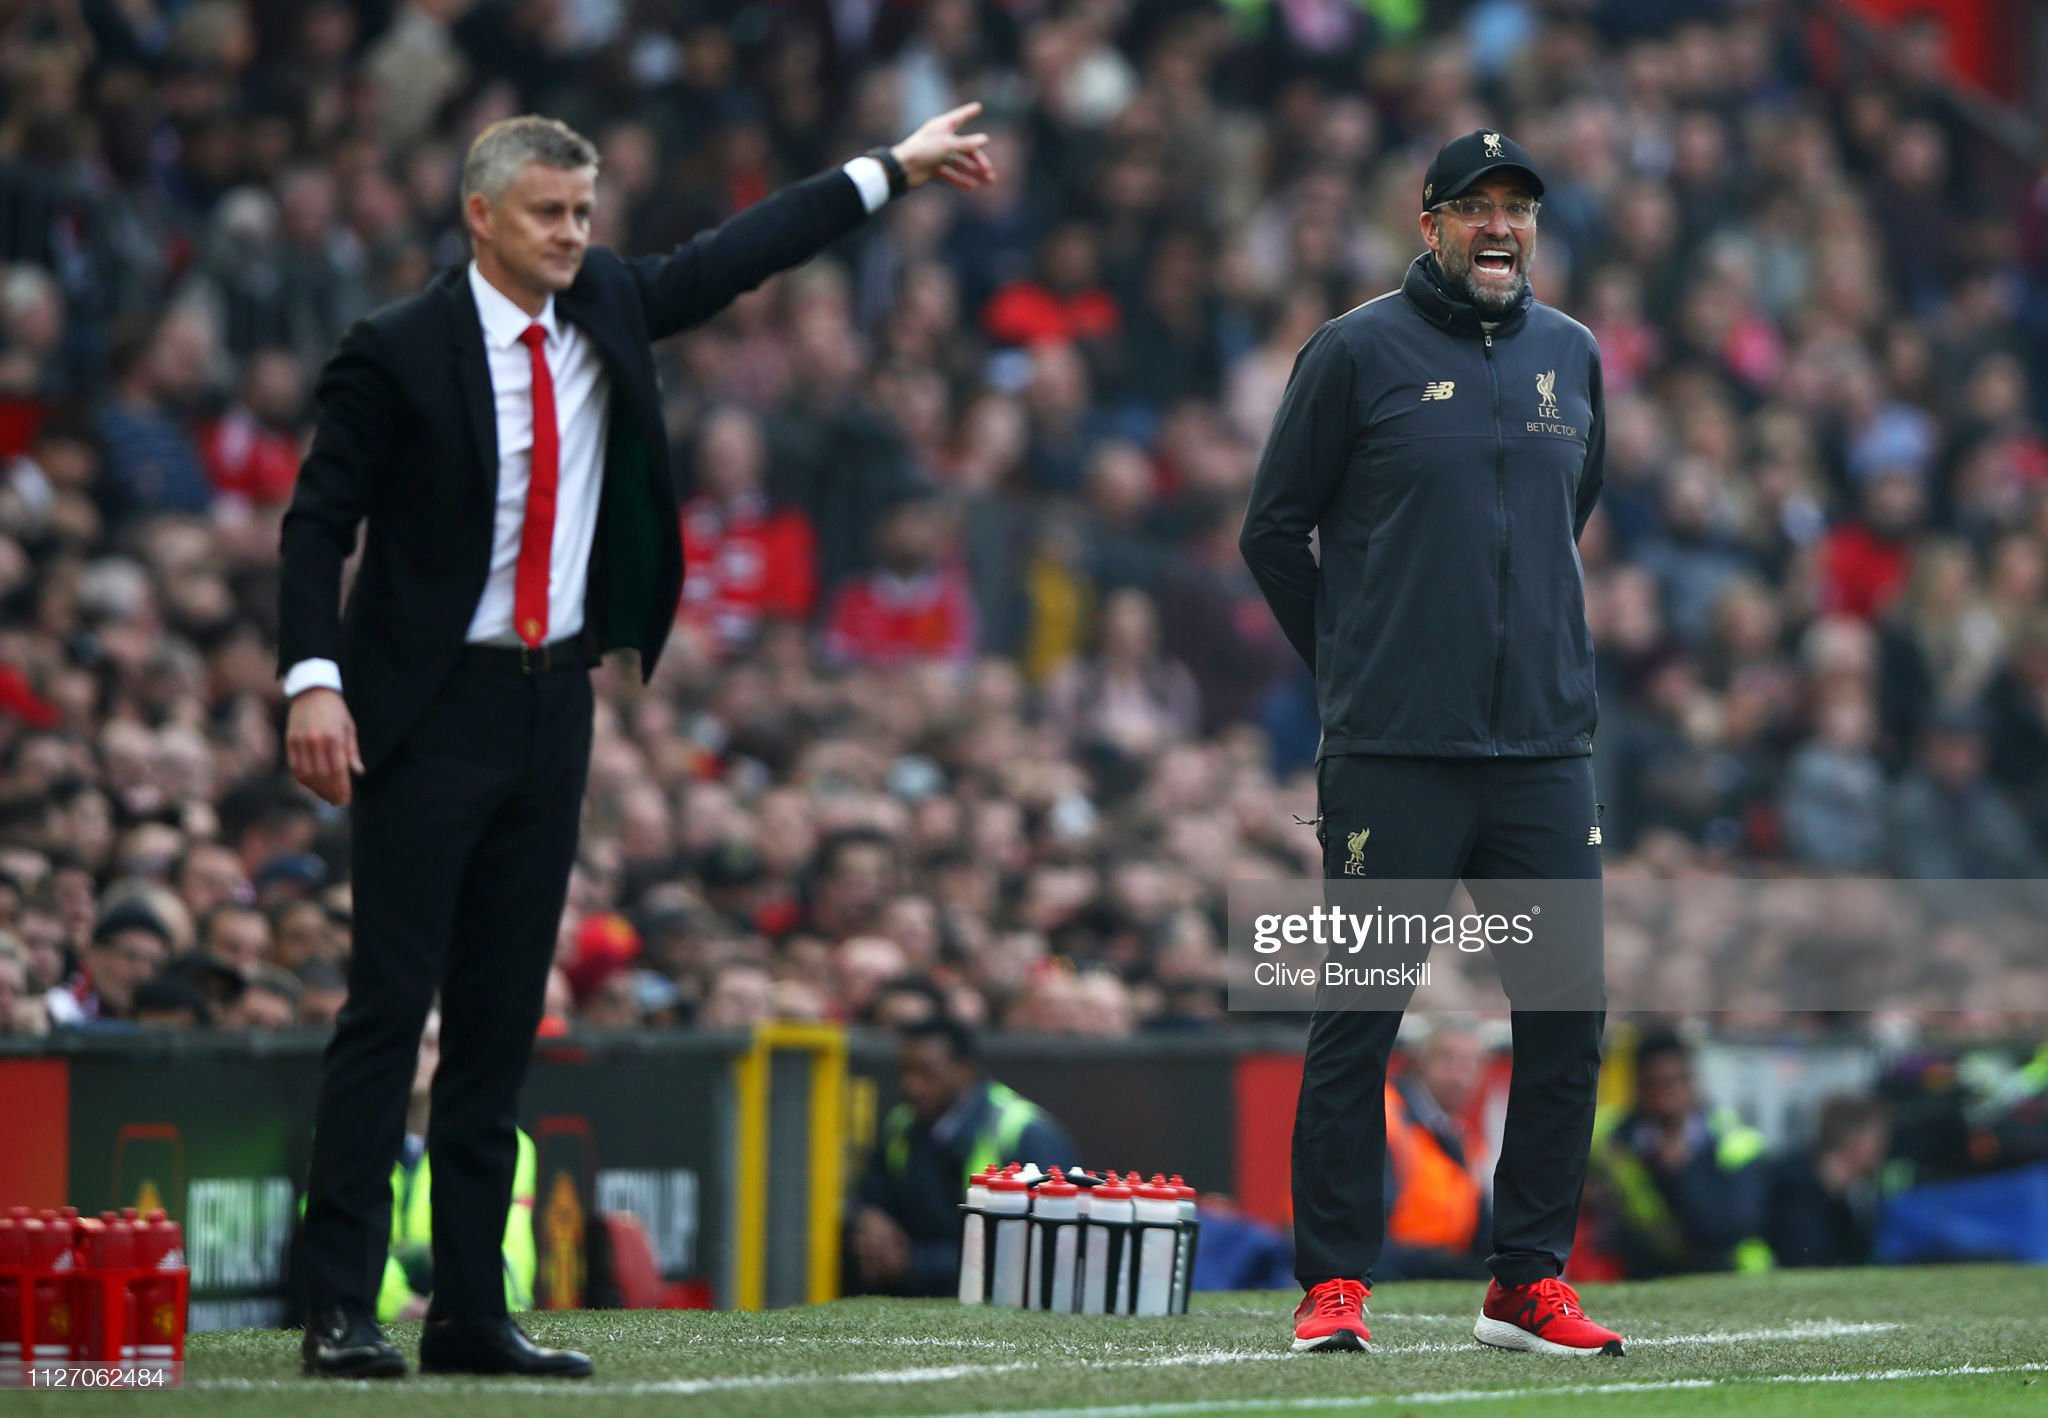 Manchester United v Liverpool preview, prediction and odds